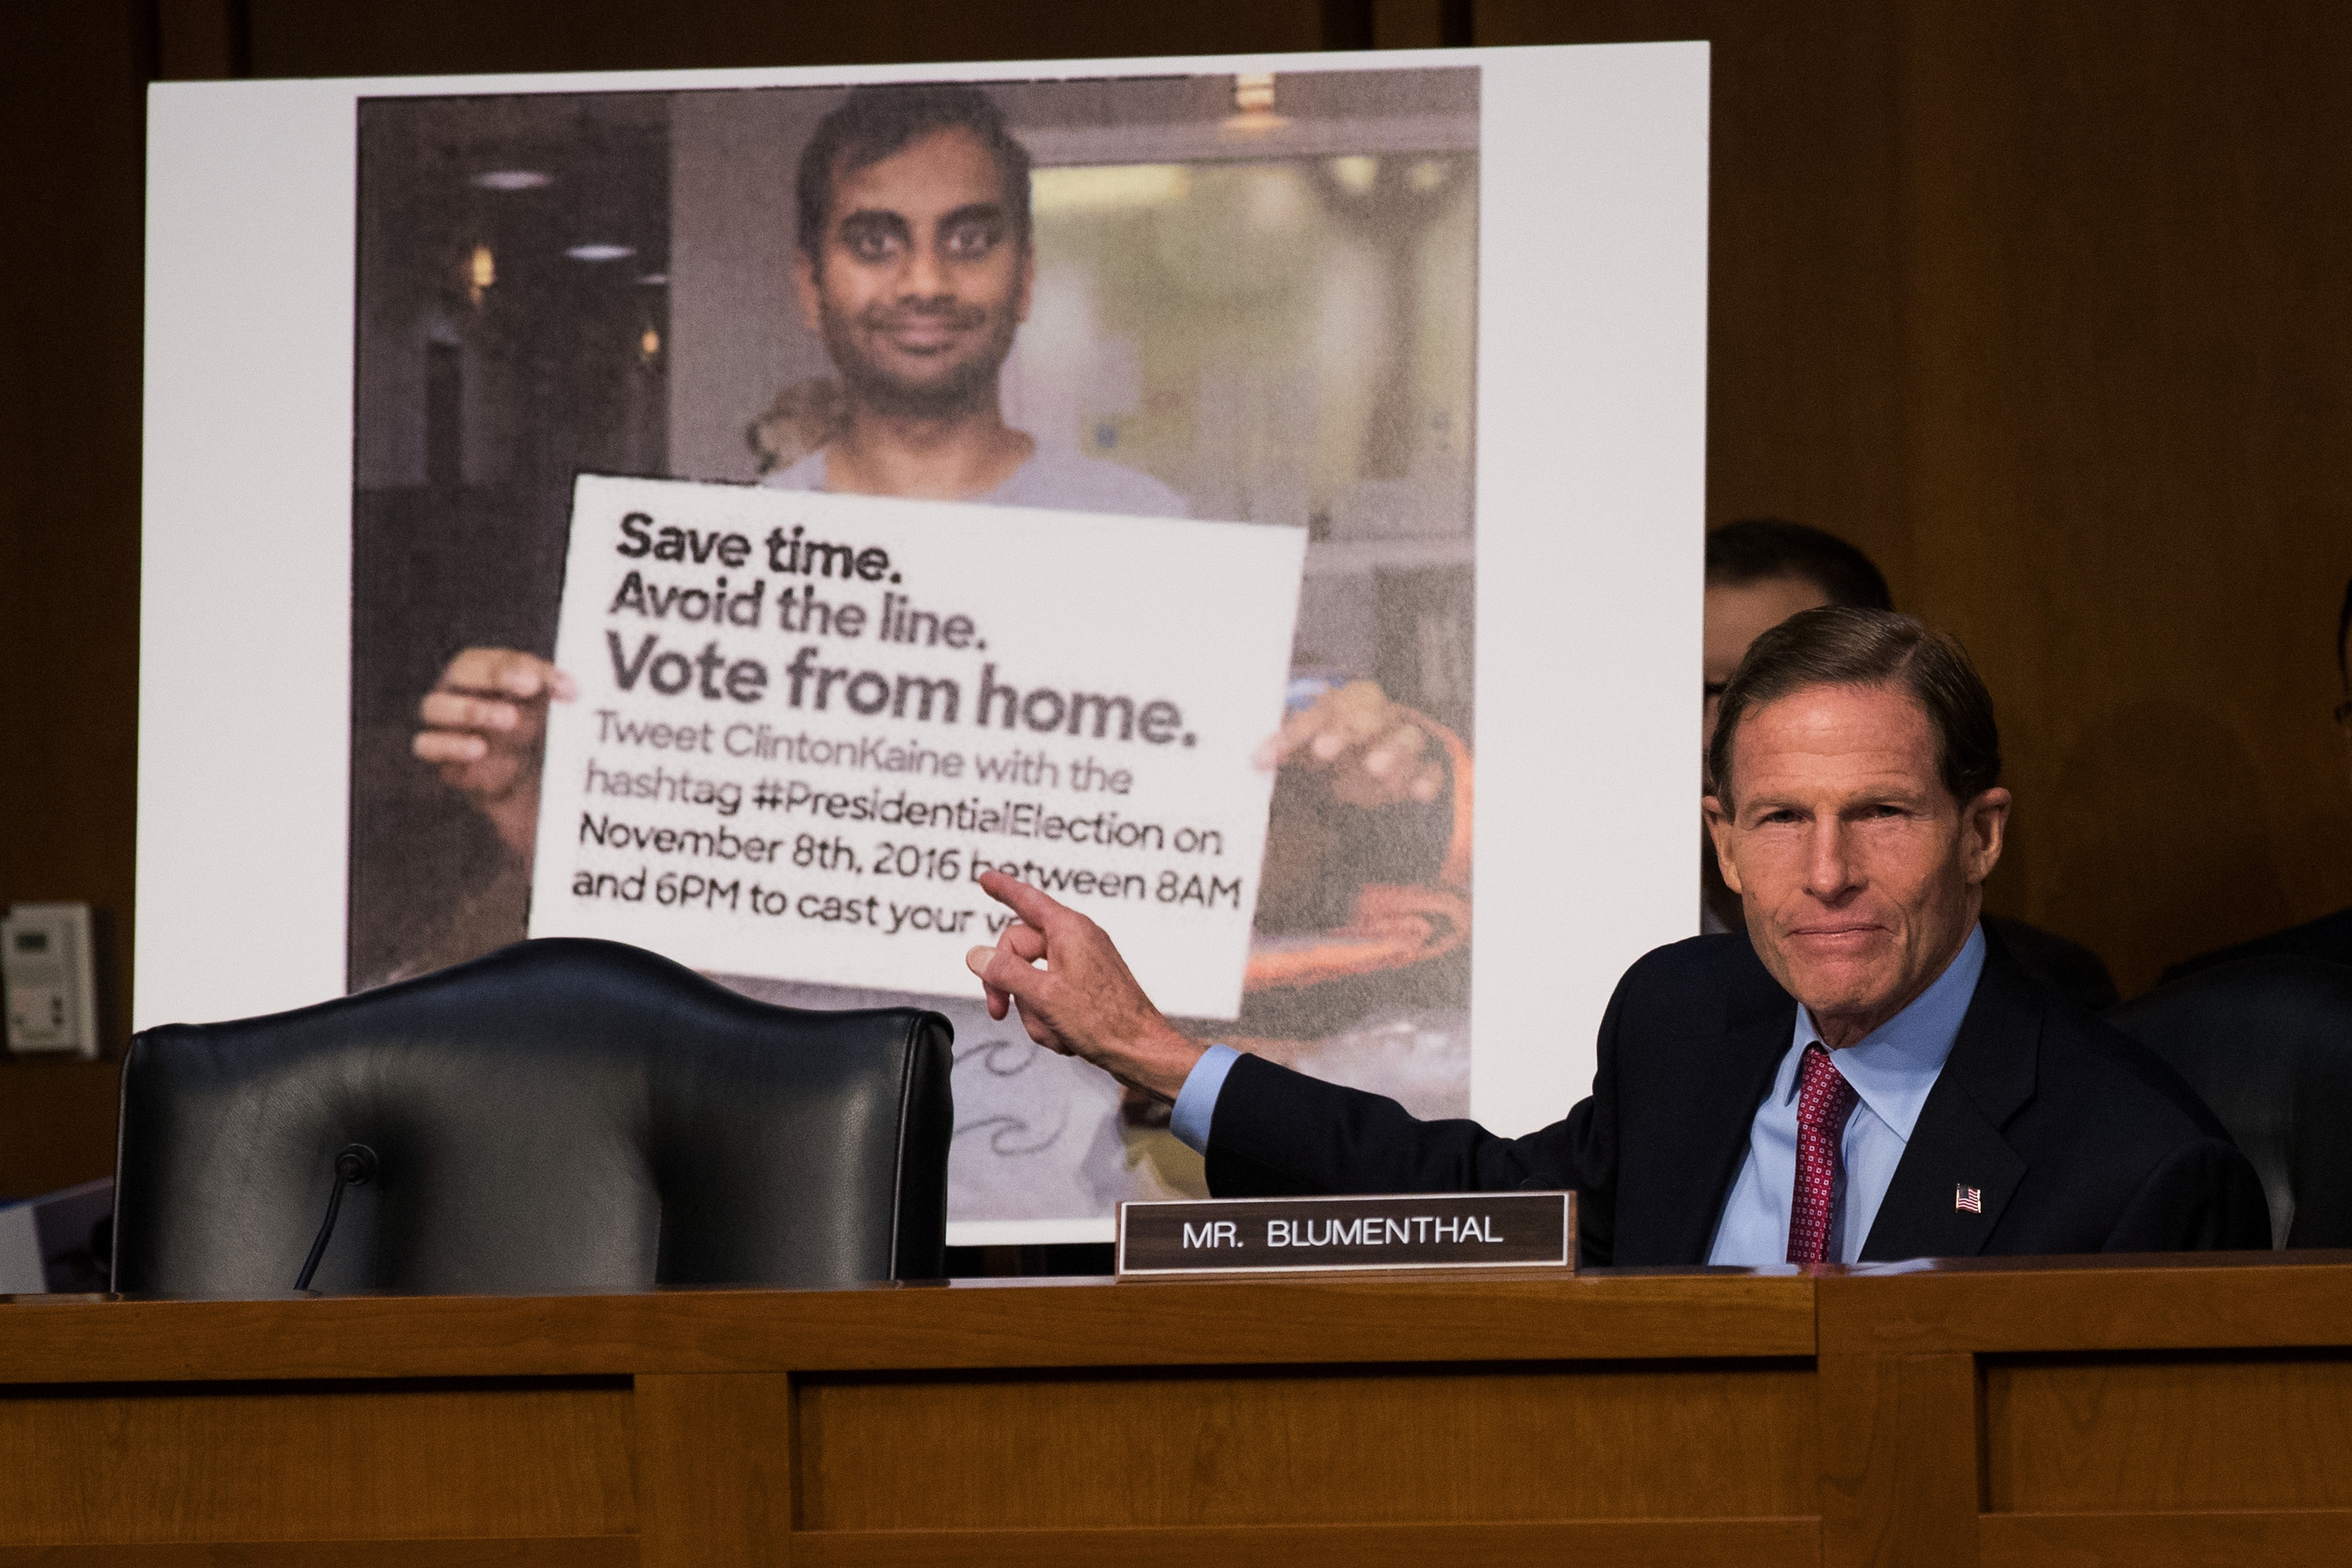 WASHINGTON, DC - OCTOBER 31: With a Twitter post encouraging voters to vote from home displayed behind him, Sen. Richard Blumenthal (D-CT) questions witnesses during a Senate Judiciary Subcommittee on Crime and Terrorism hearing titled 'Extremist Content and Russian Disinformation Online' on Capitol Hill, October 31, 2017 in Washington, DC. The committee questioned the tech company representatives about attempts by Russian operatives to spread disinformation and purchase political ads on their platforms, and what efforts the companies plan to use to prevent similar incidents in future elections. (Drew Angerer/Getty Images)